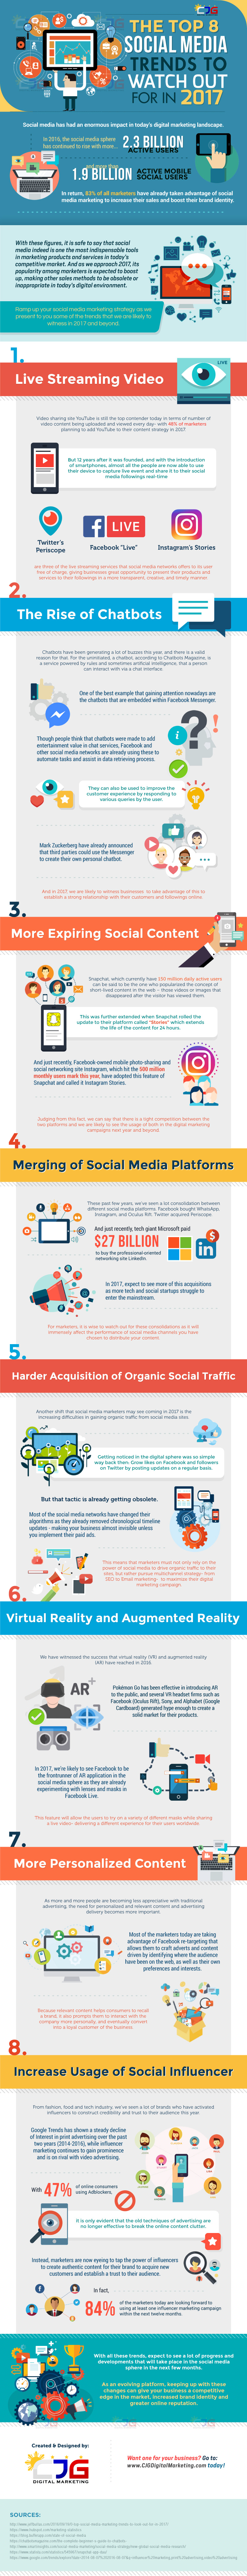 Top 8 Hottest Social Media Marketing Trends in 2017 [Infographic]